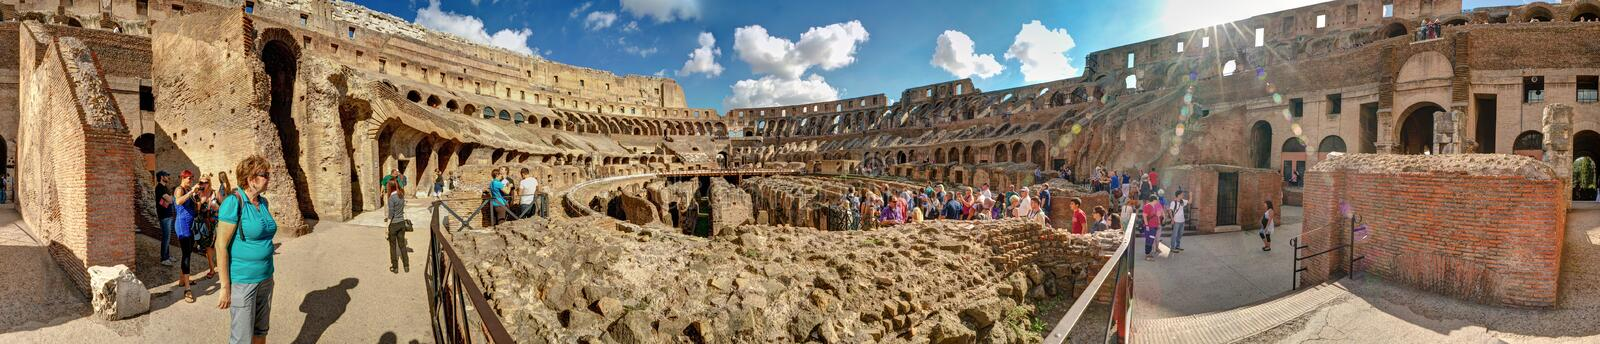 360 degree circular panorama inside the Colosseum or Coliseum in royalty free stock photos